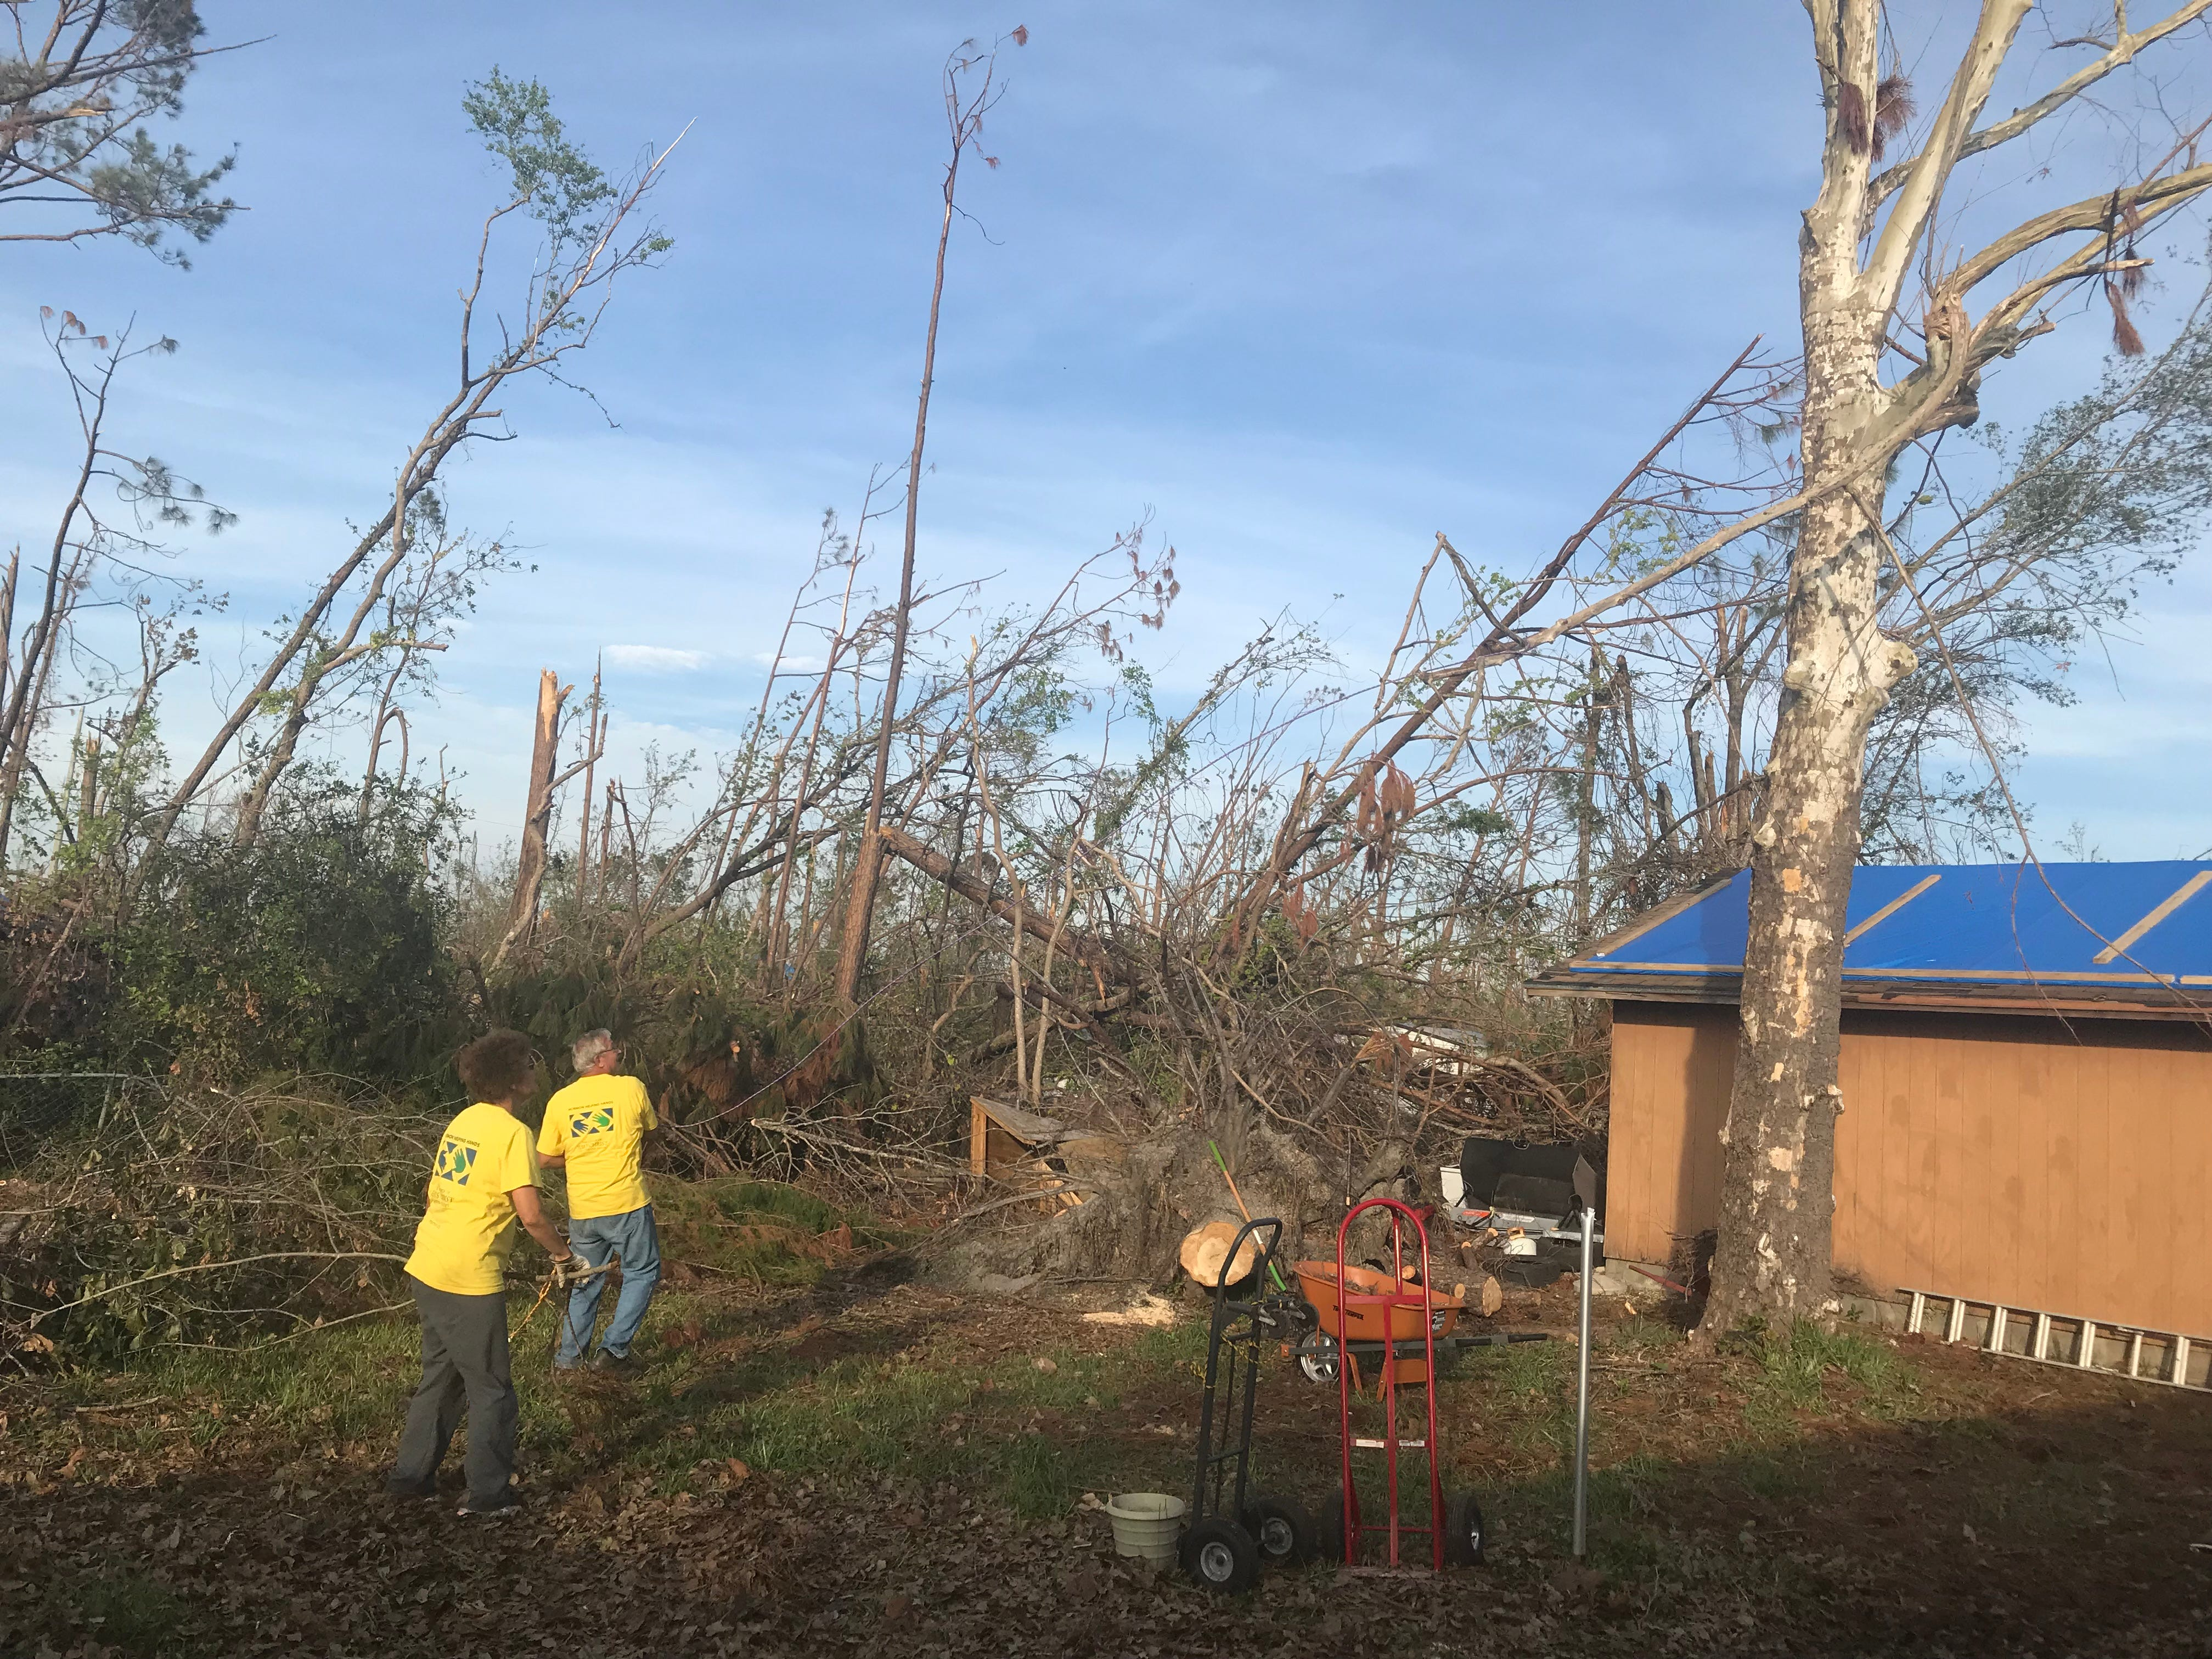 Cathy Edge stands back while her husband, George, attempts to detach a tree limb in Callaway, Florida.